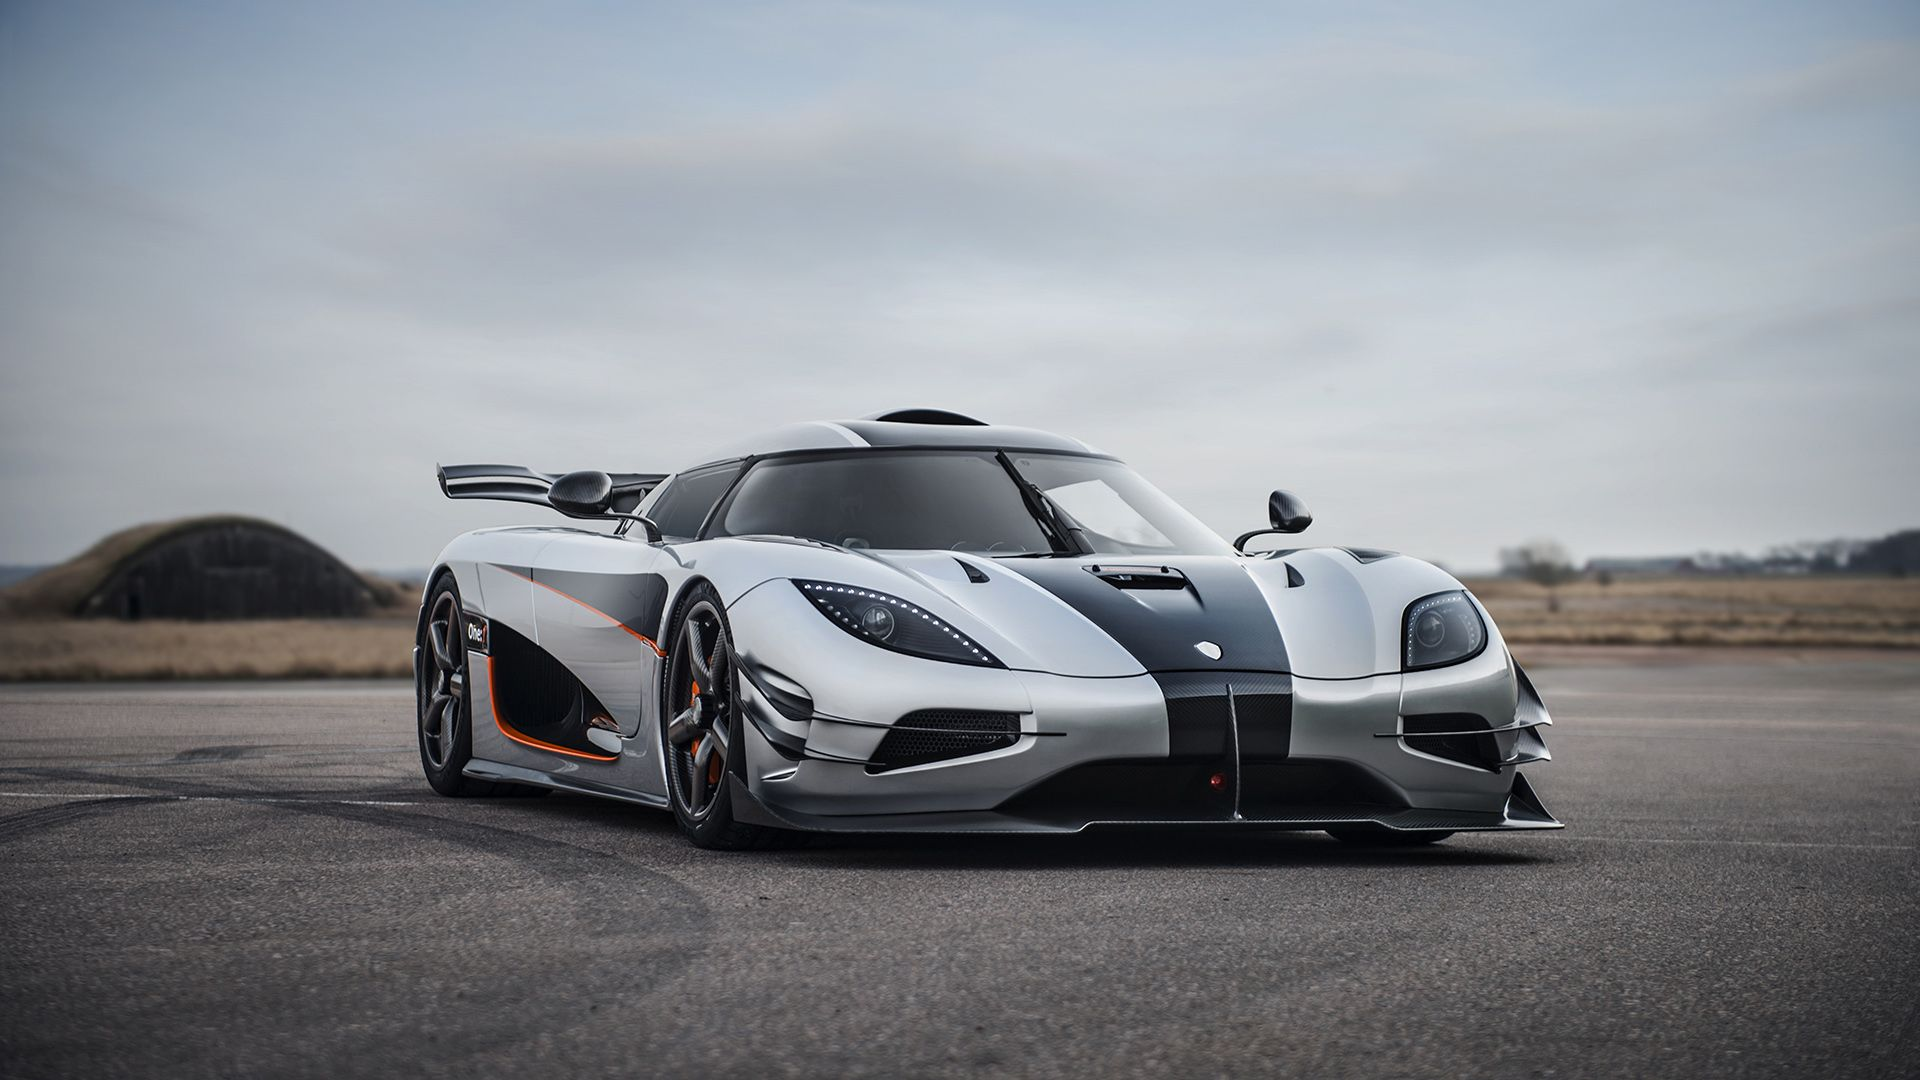 Koenigsegg One 1 Wallpapers Top Free Koenigsegg One 1 Backgrounds Wallpaperaccess